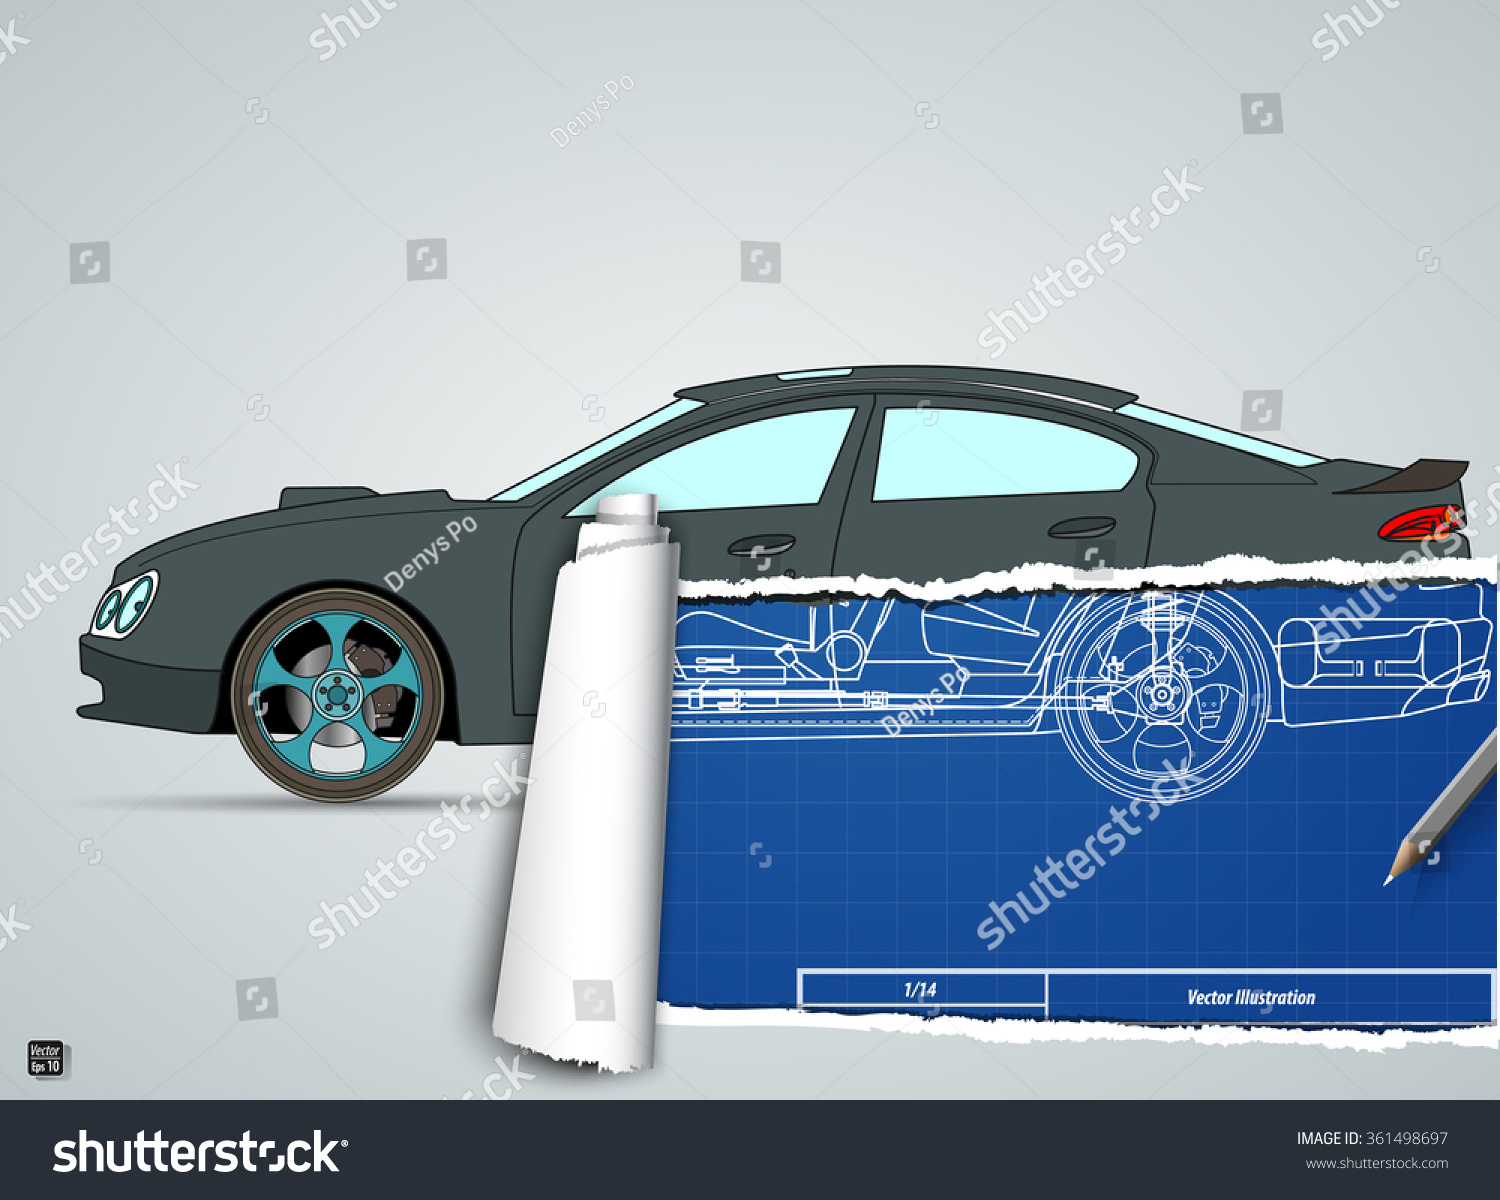 Torn drawing car on blueprint car vectores en stock 361498697 torn drawing car on the blueprint car vector illustration eps 10 malvernweather Image collections